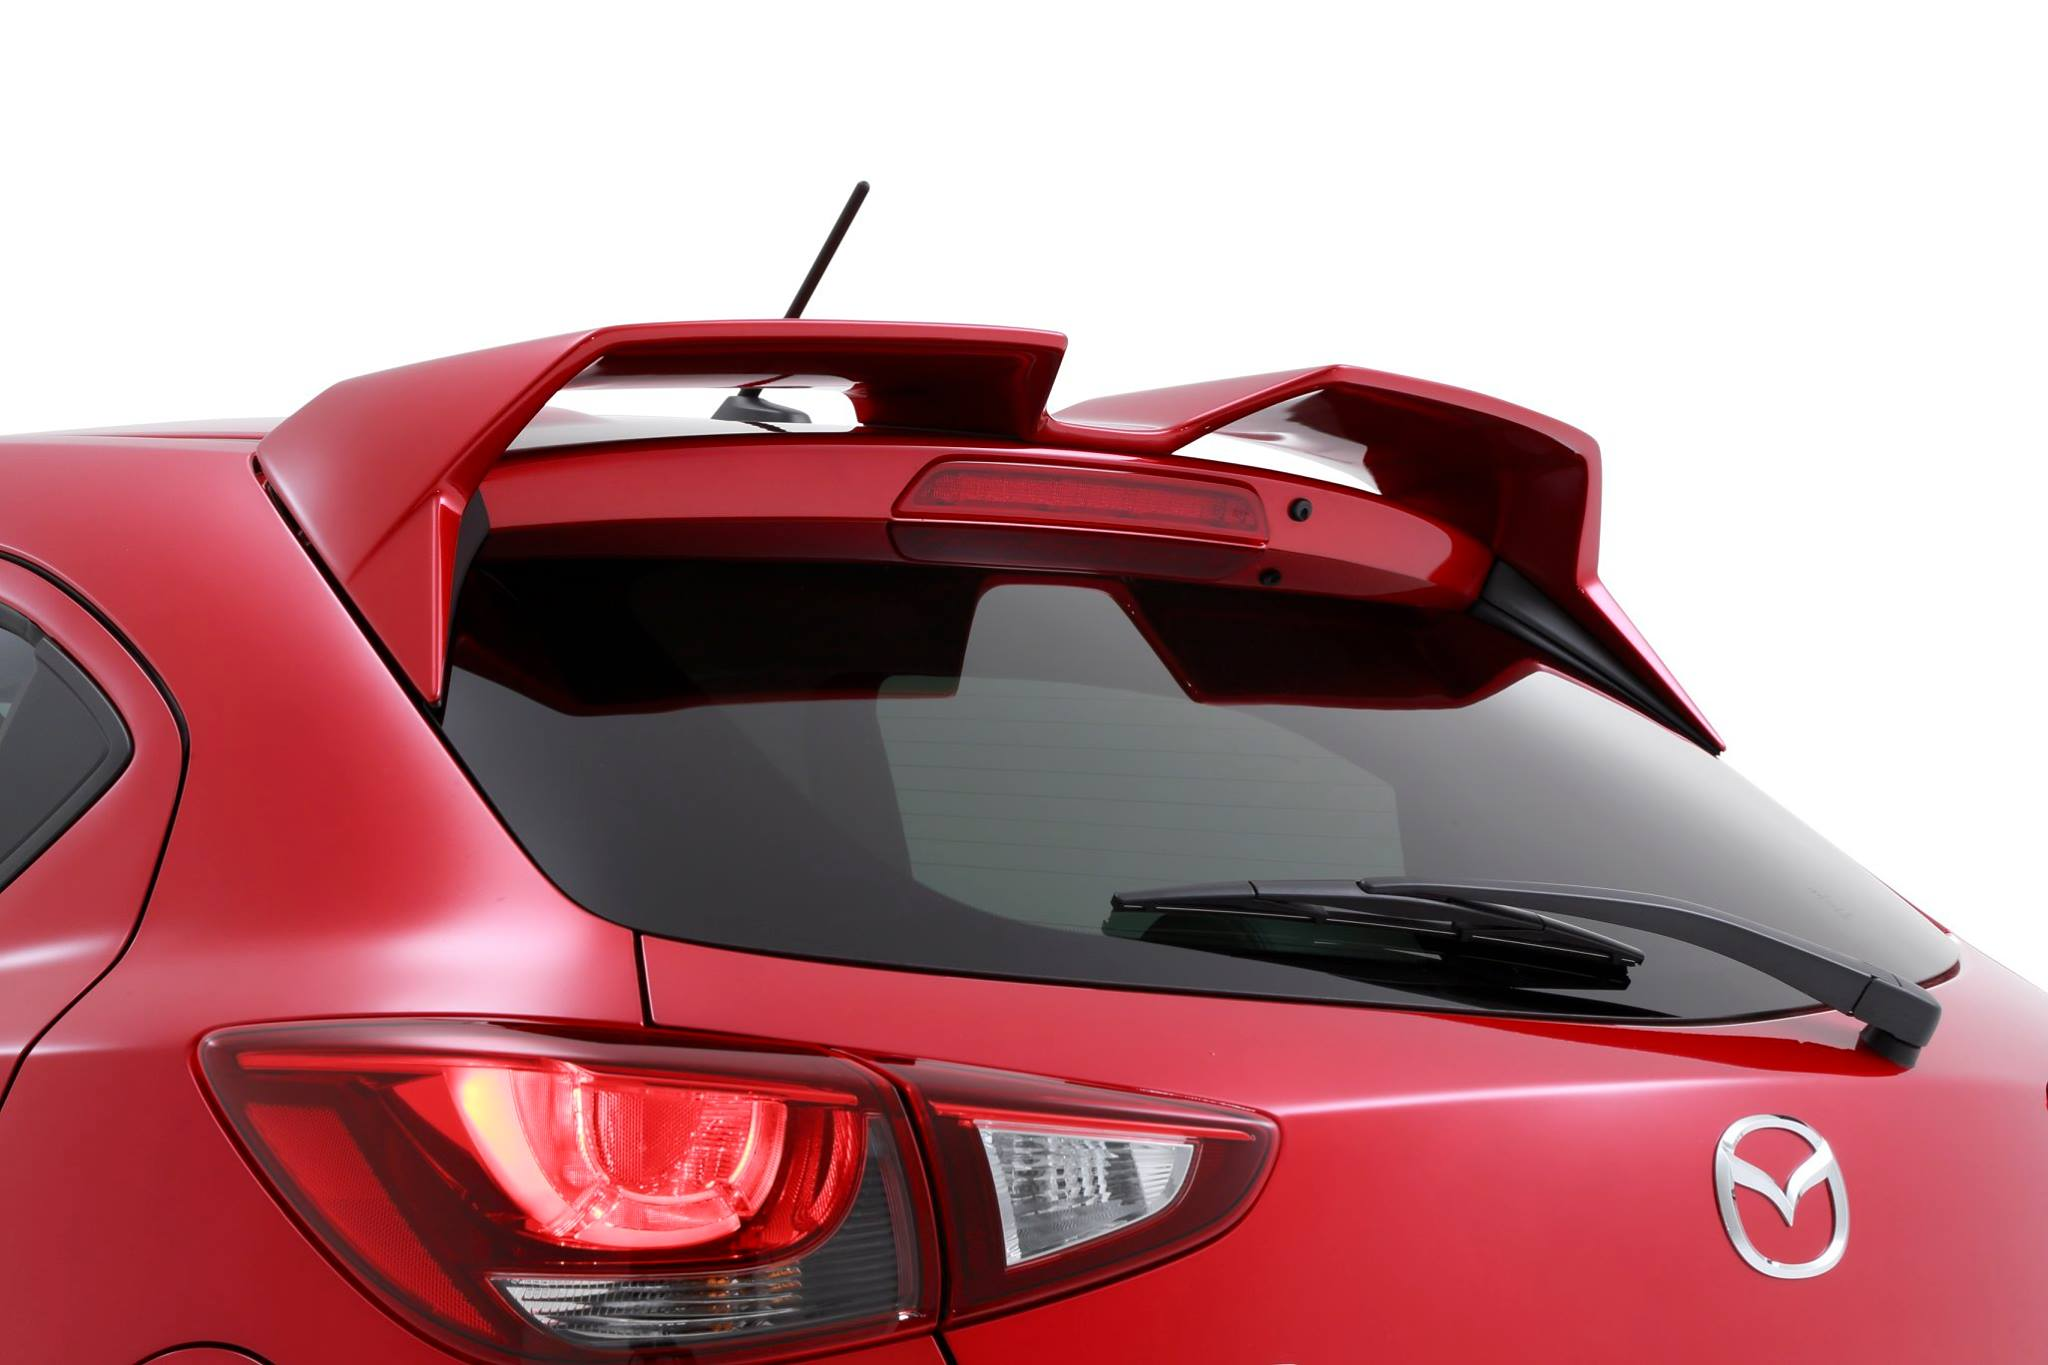 2016 Mazda2 and CX-3 Get Aggressive Body Kits from DAMD in ...